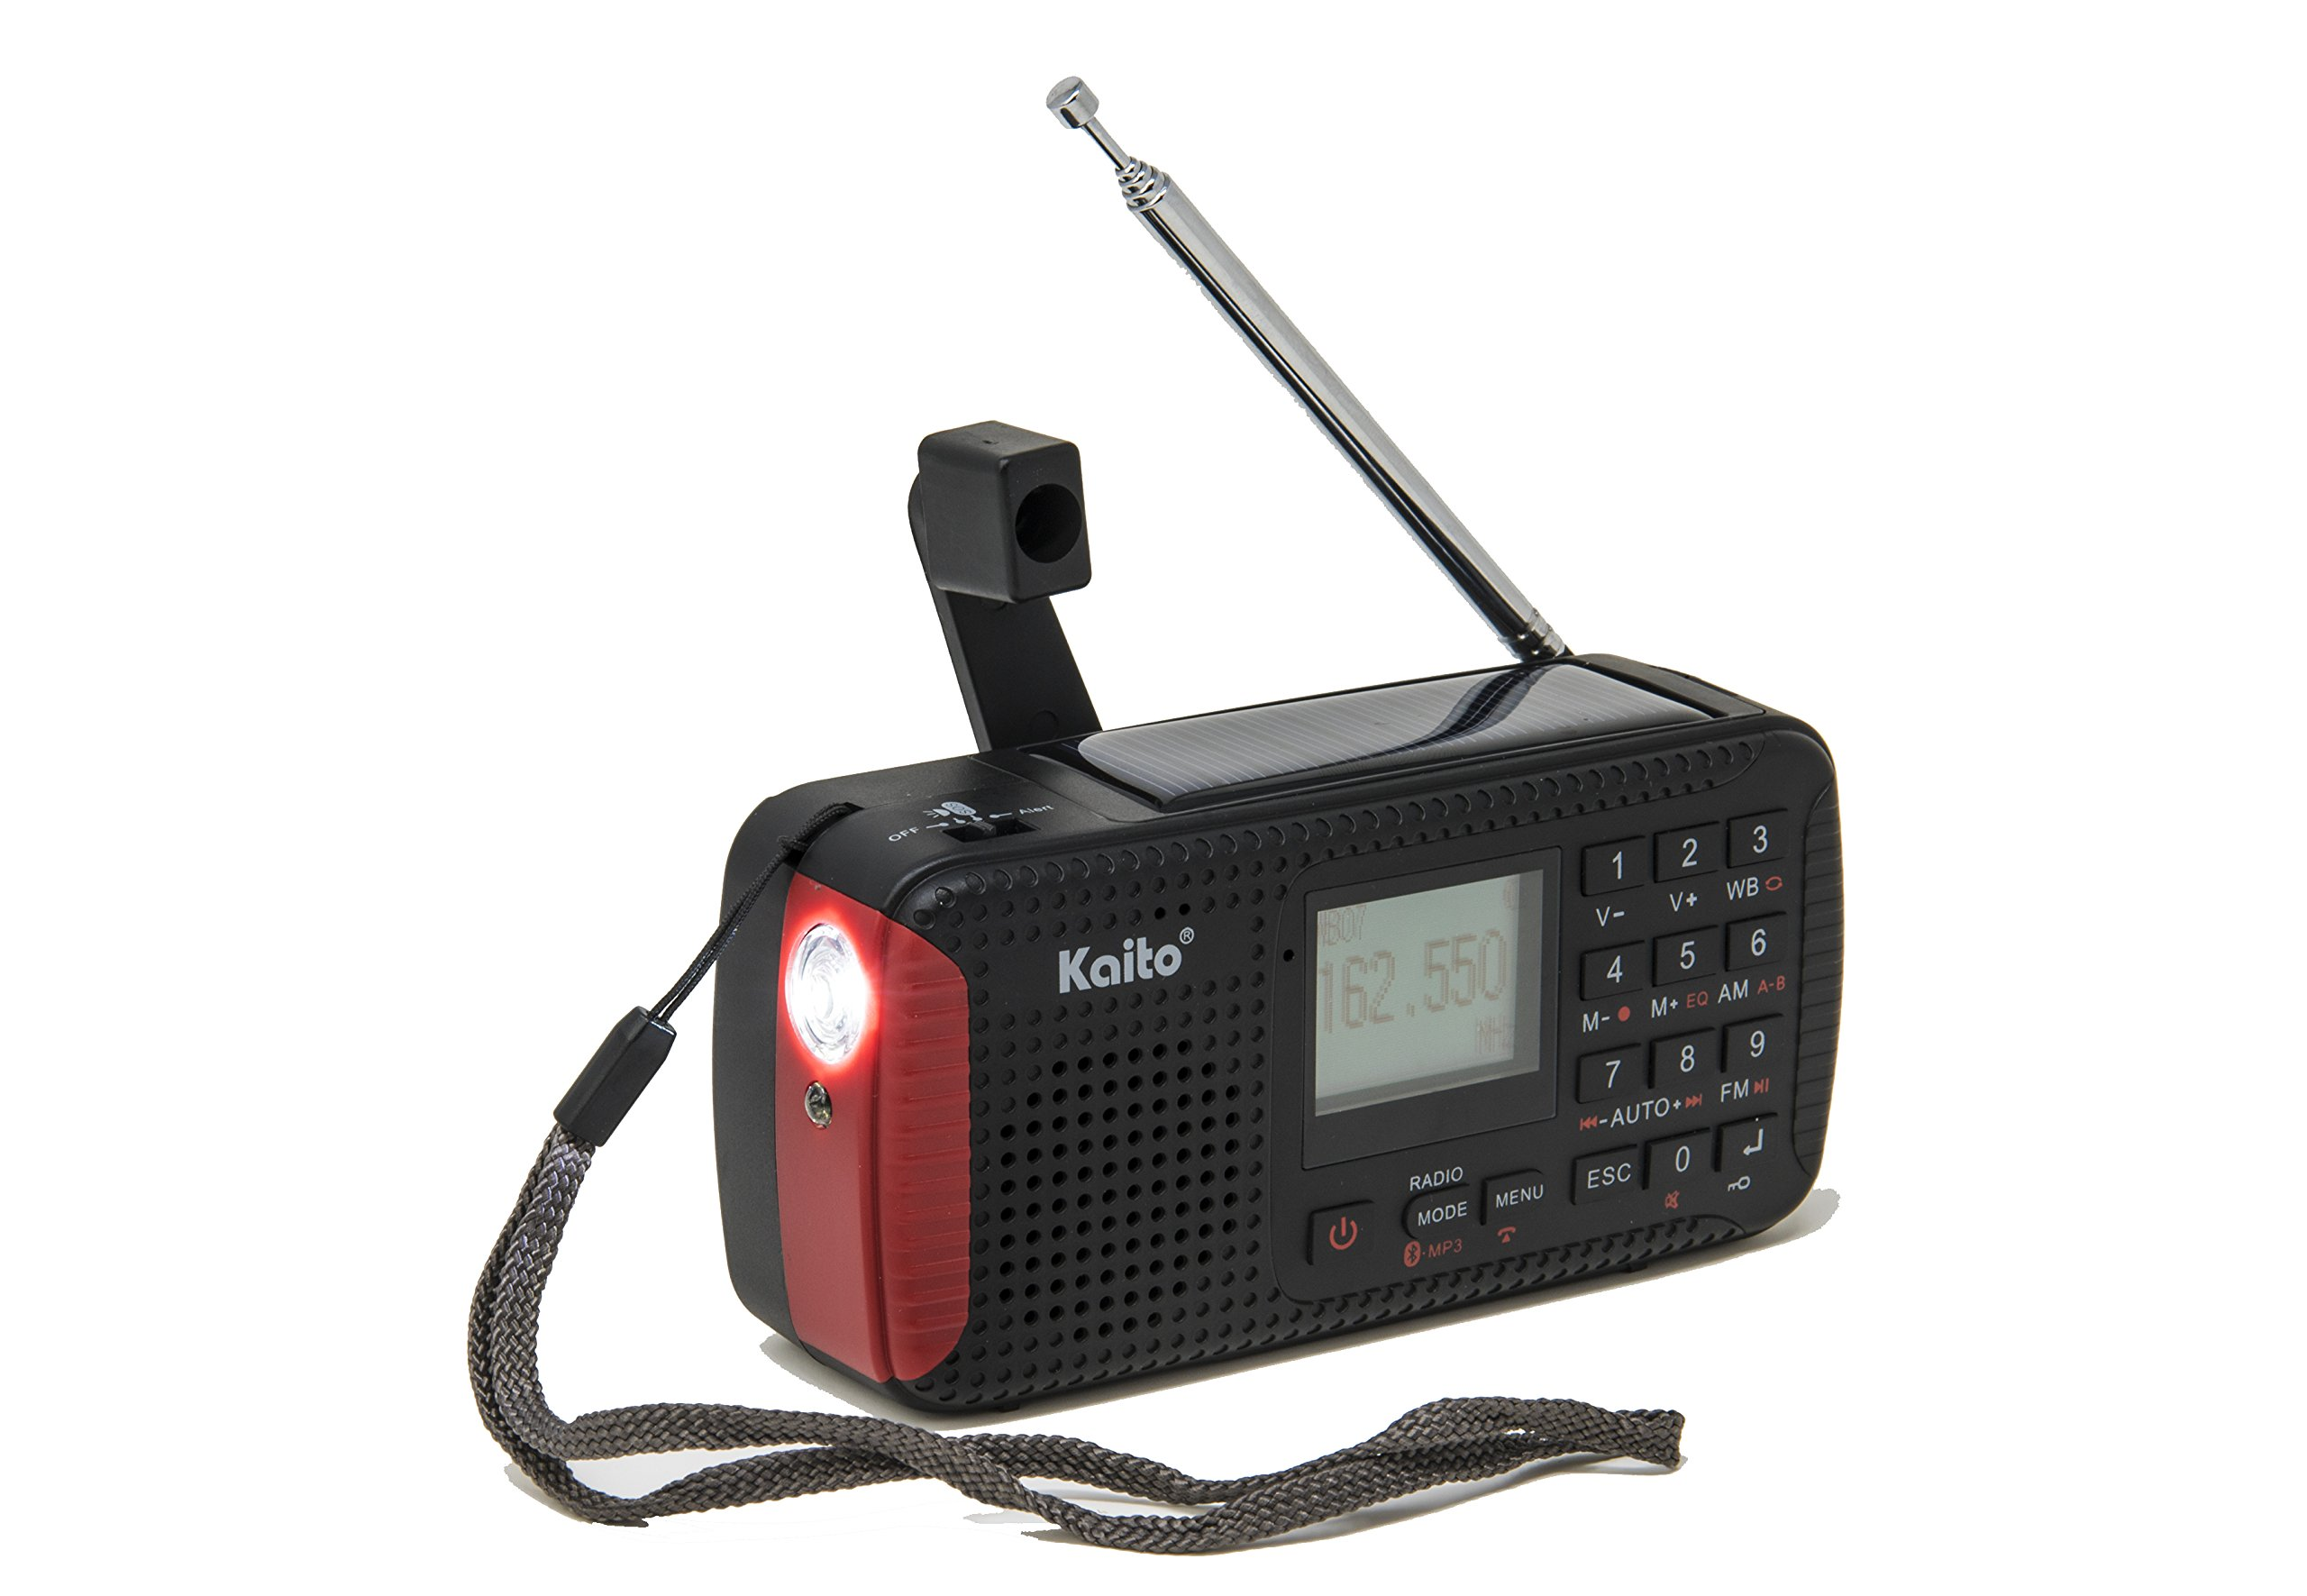 Kaito KA680 Pocket Digital AM/FM NOAA Weather Emergency Radio with Location-Specific Public Emergency Alert, Bluetooth, MP3 Player & Recorder by Kaito